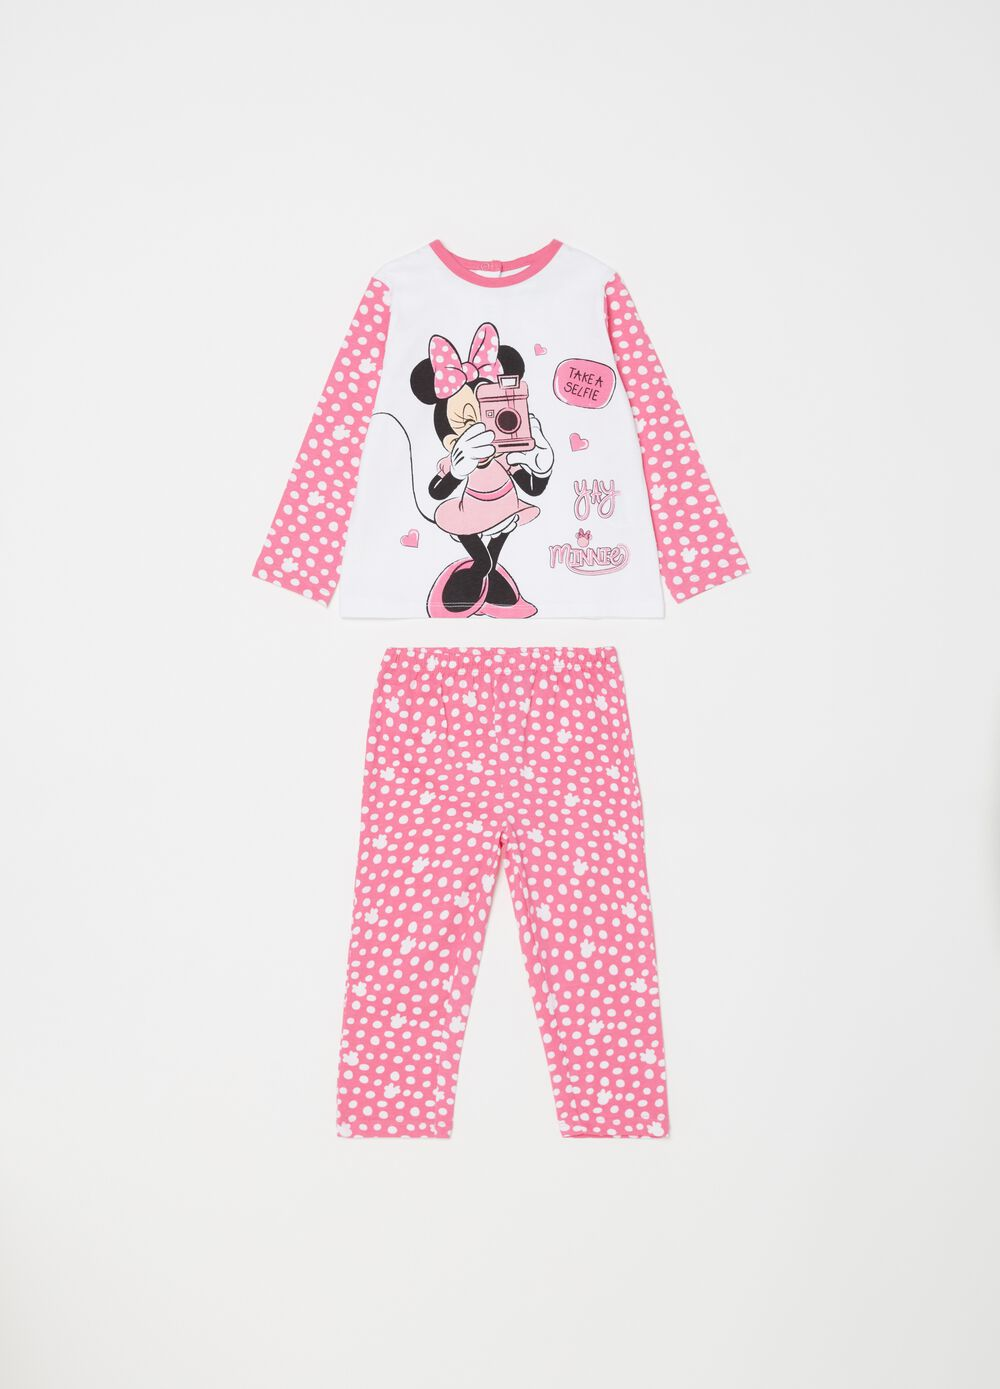 100% cotton pyjamas with Minnie Mouse pattern